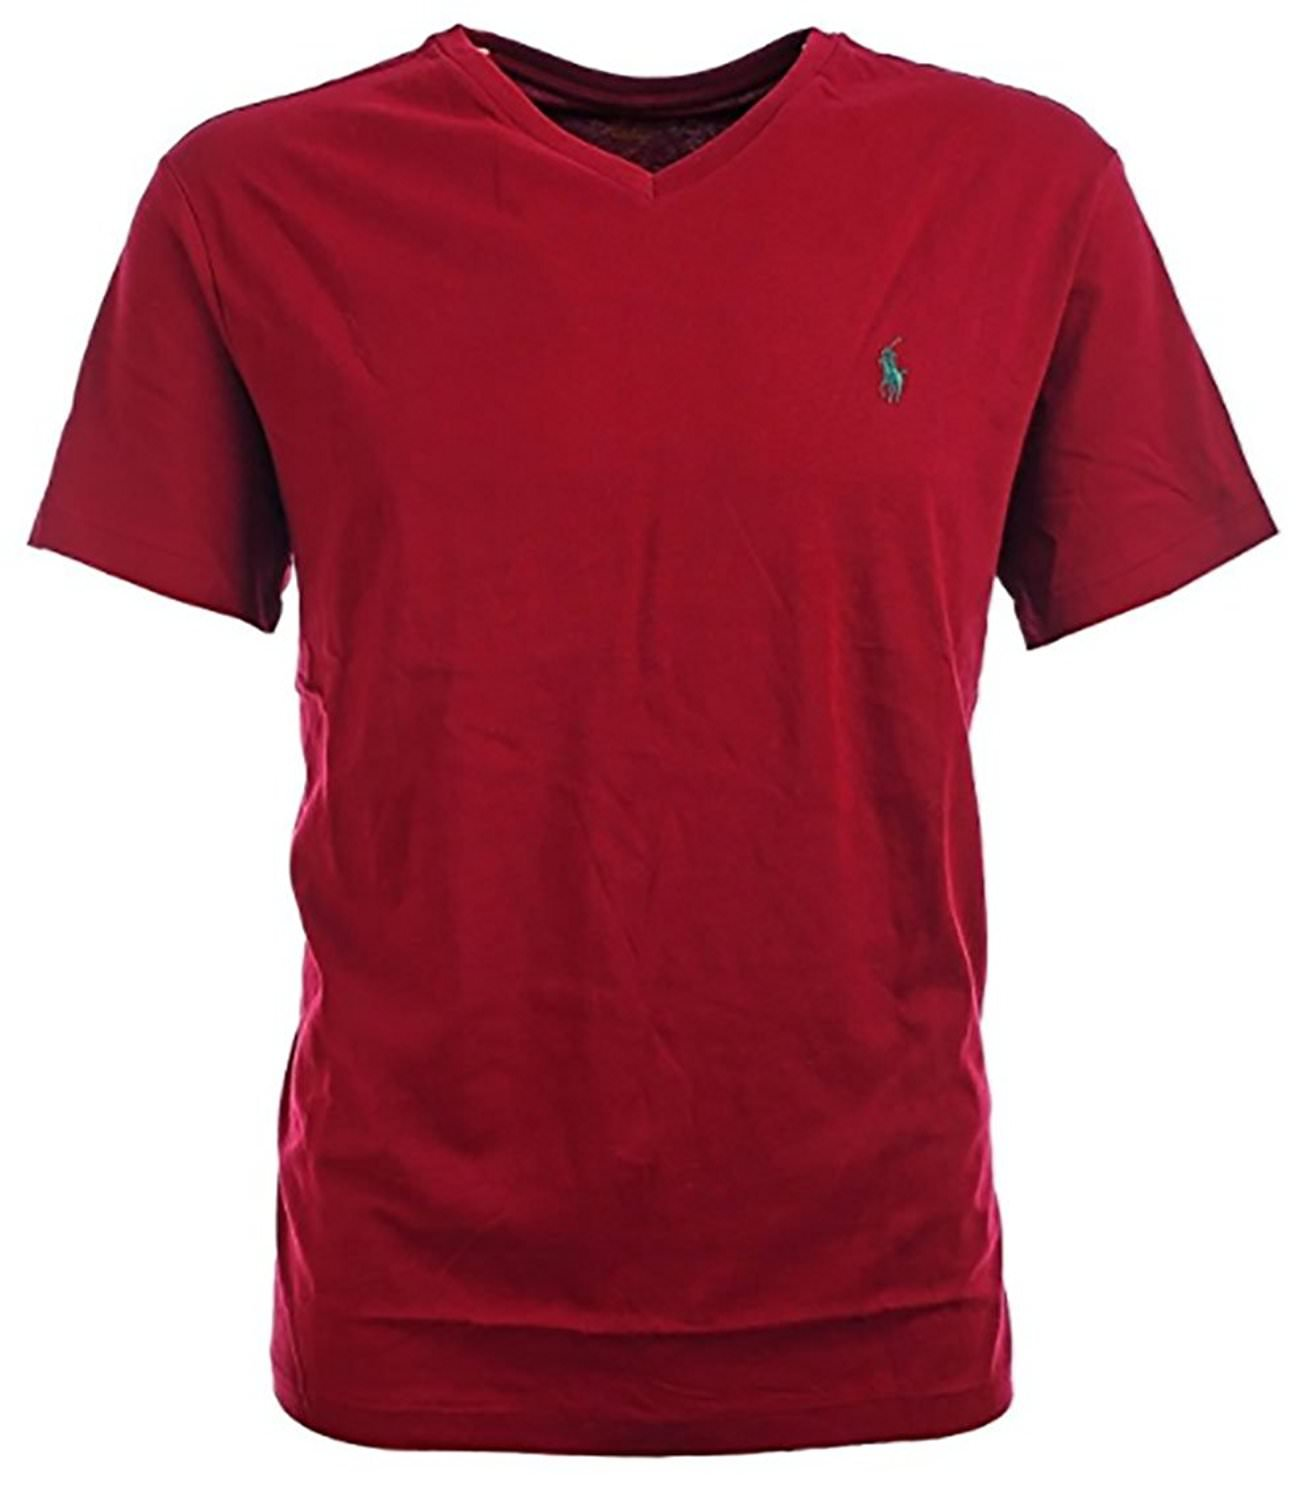 Polo Ralph Lauren Men's Classic Fit V-Neck T-Shirt (Small, Wine Red)